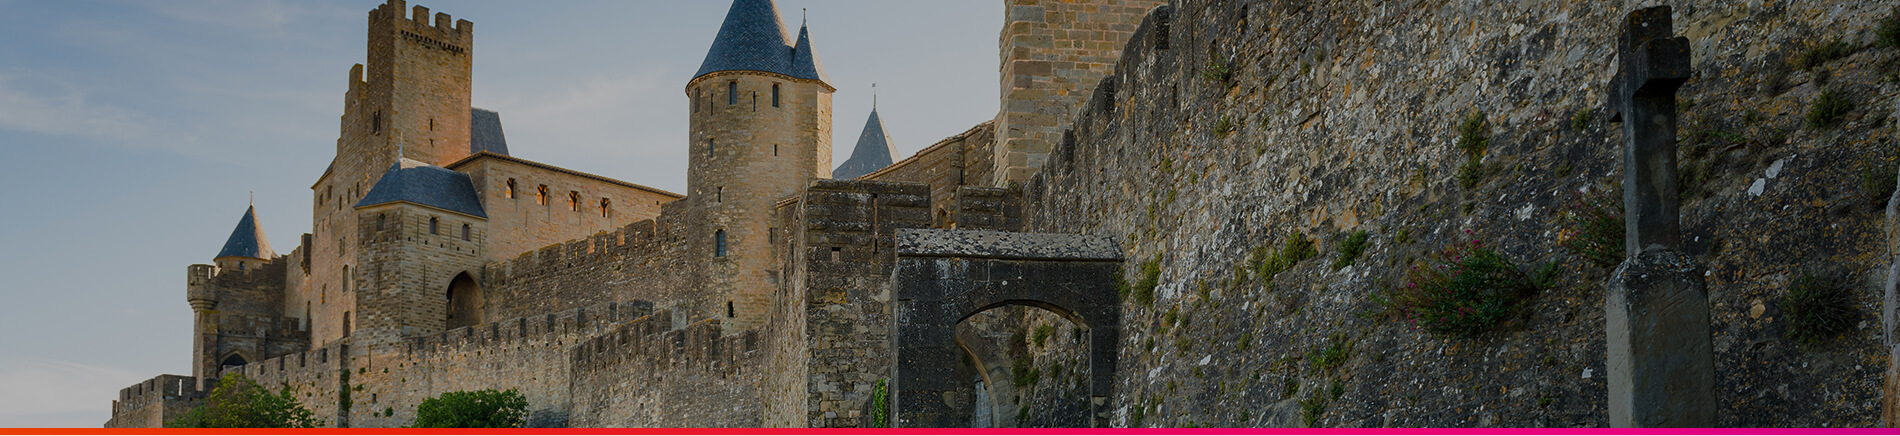 Toulouse Welcome - Header Carcassonne Château Comtal